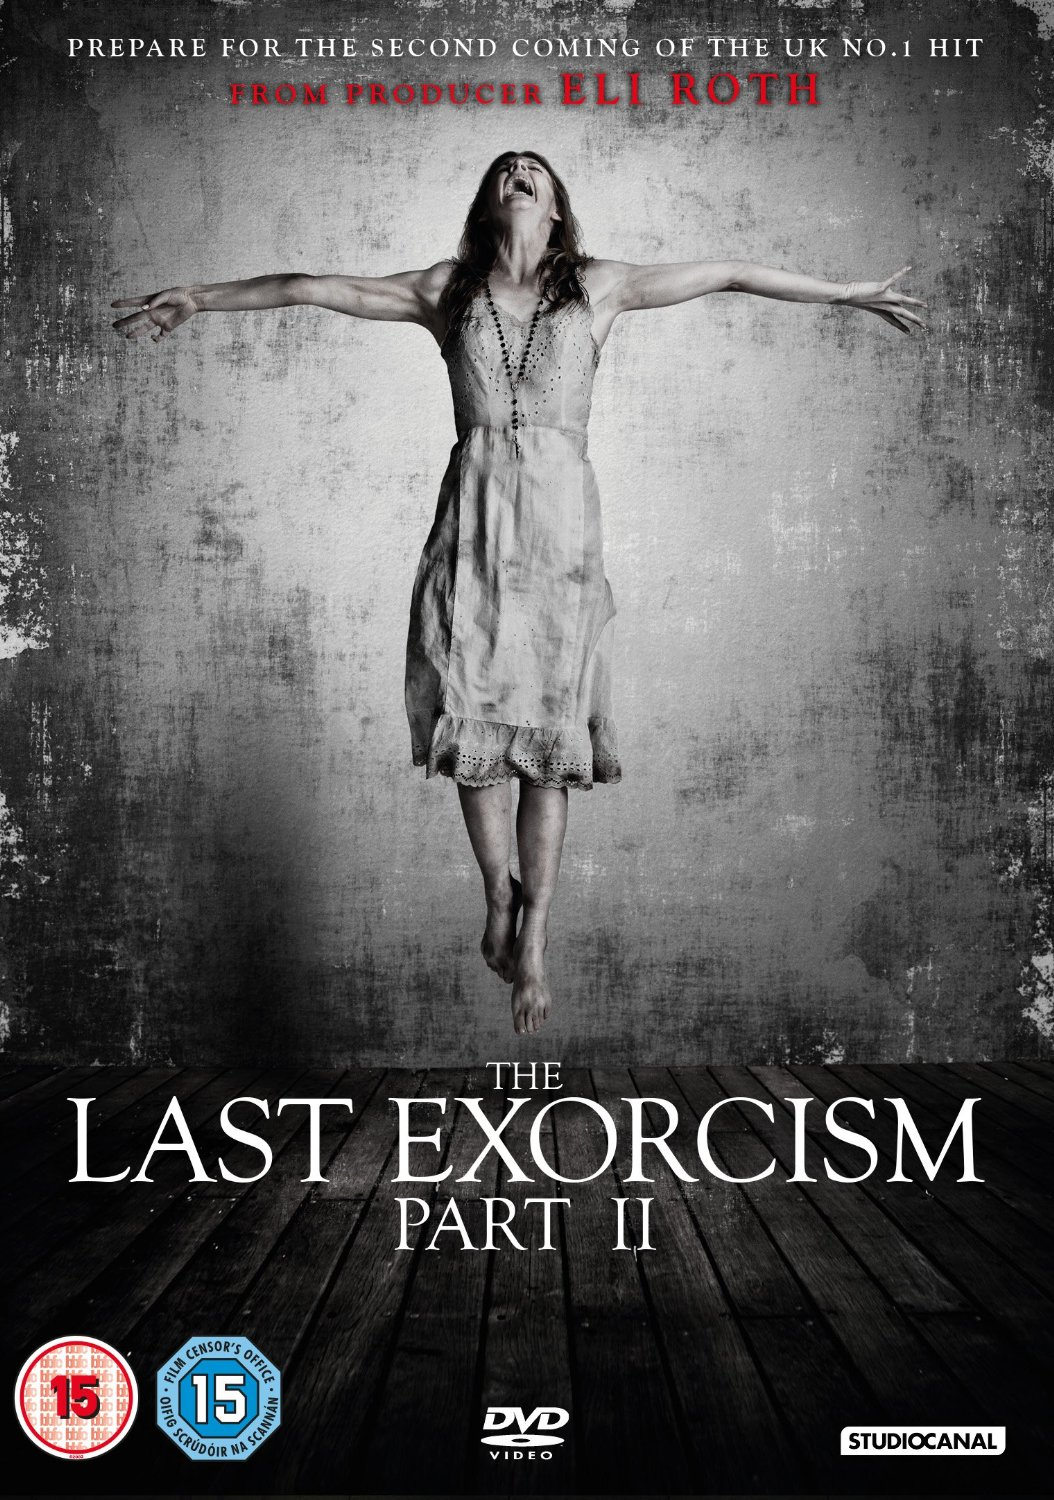 The Last Exorcism 2 Dvd Cover The last exorcism part 2 is